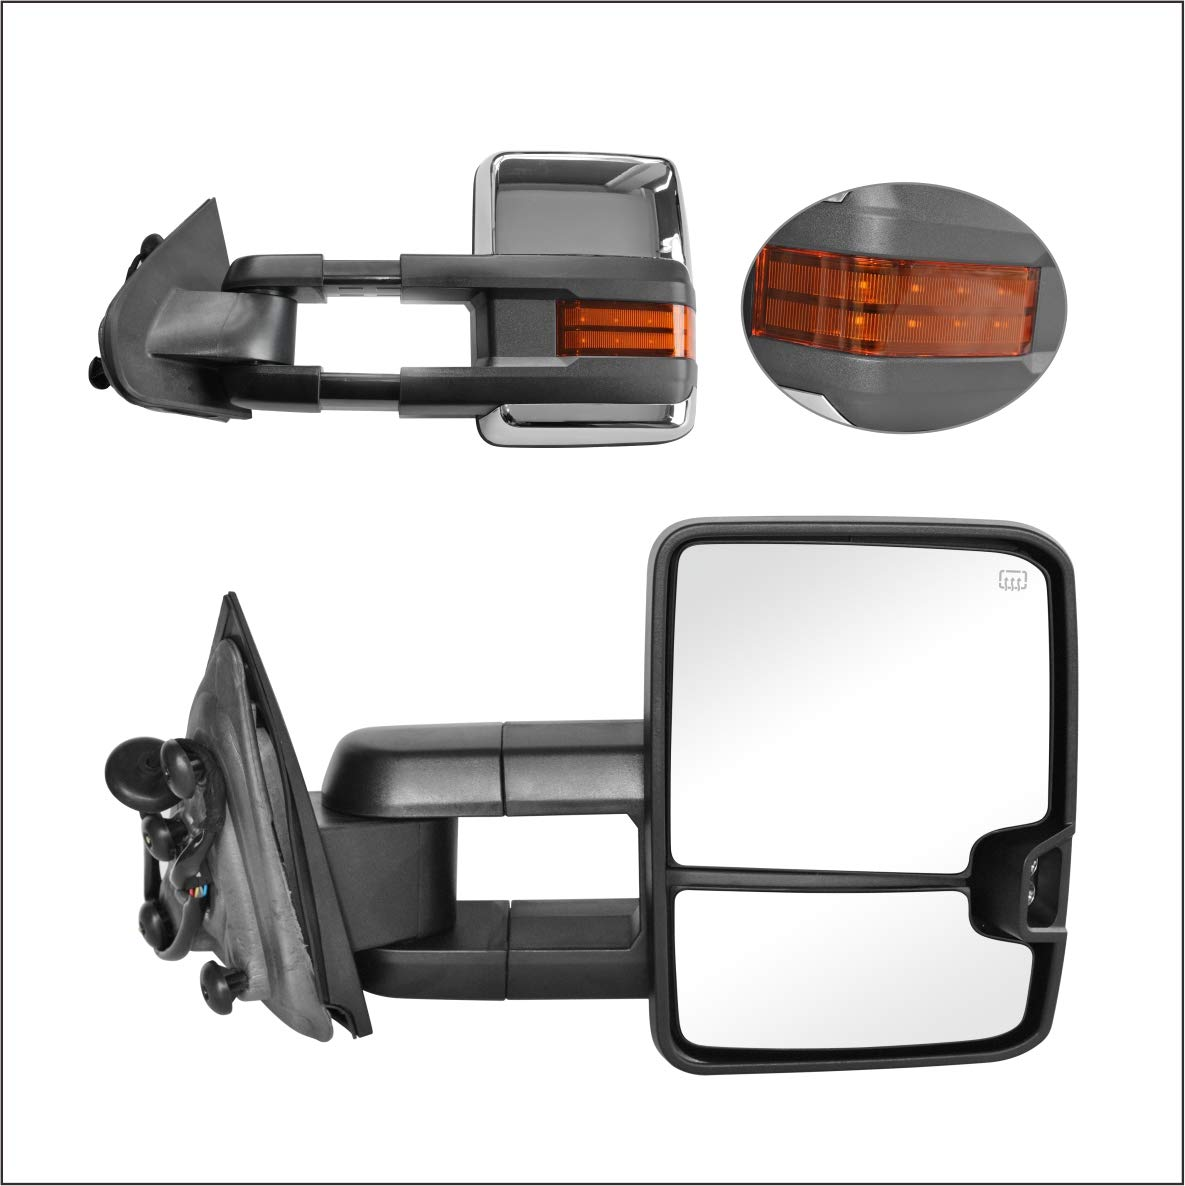 PAIR SET Perfit Zone Towing Mirrors Replacement Fit 2014-2017 for SILVERADO//GMC SIERRA POWER HEATED,W//AMBER SIGNAL,CHROME